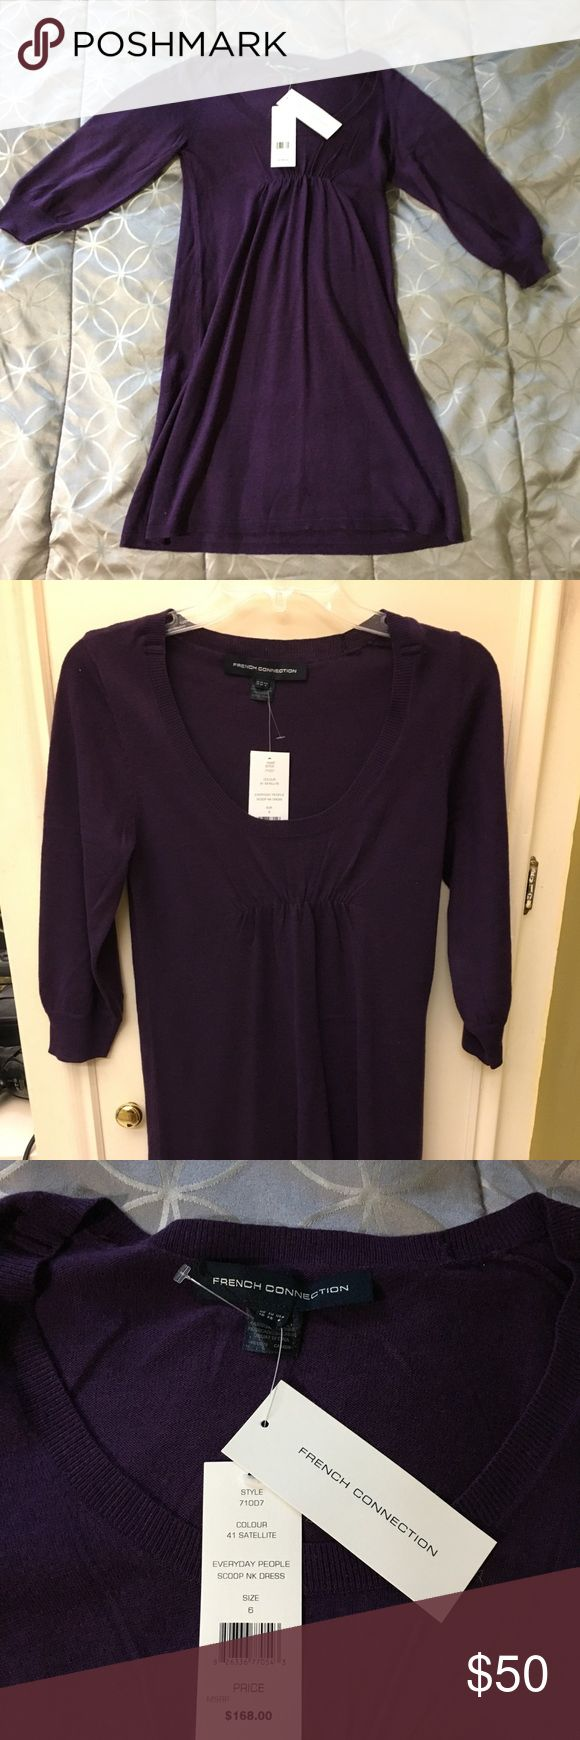 NWT French connection purple scoop neck dress French connection purple scoop neck dress. Perfect for fall/winter. It looks good alone and with leggings. I'm 5'1 just in case you need an idea of where the dress will fall on you and the arms go a little pass my elbows. French Connection Dresses